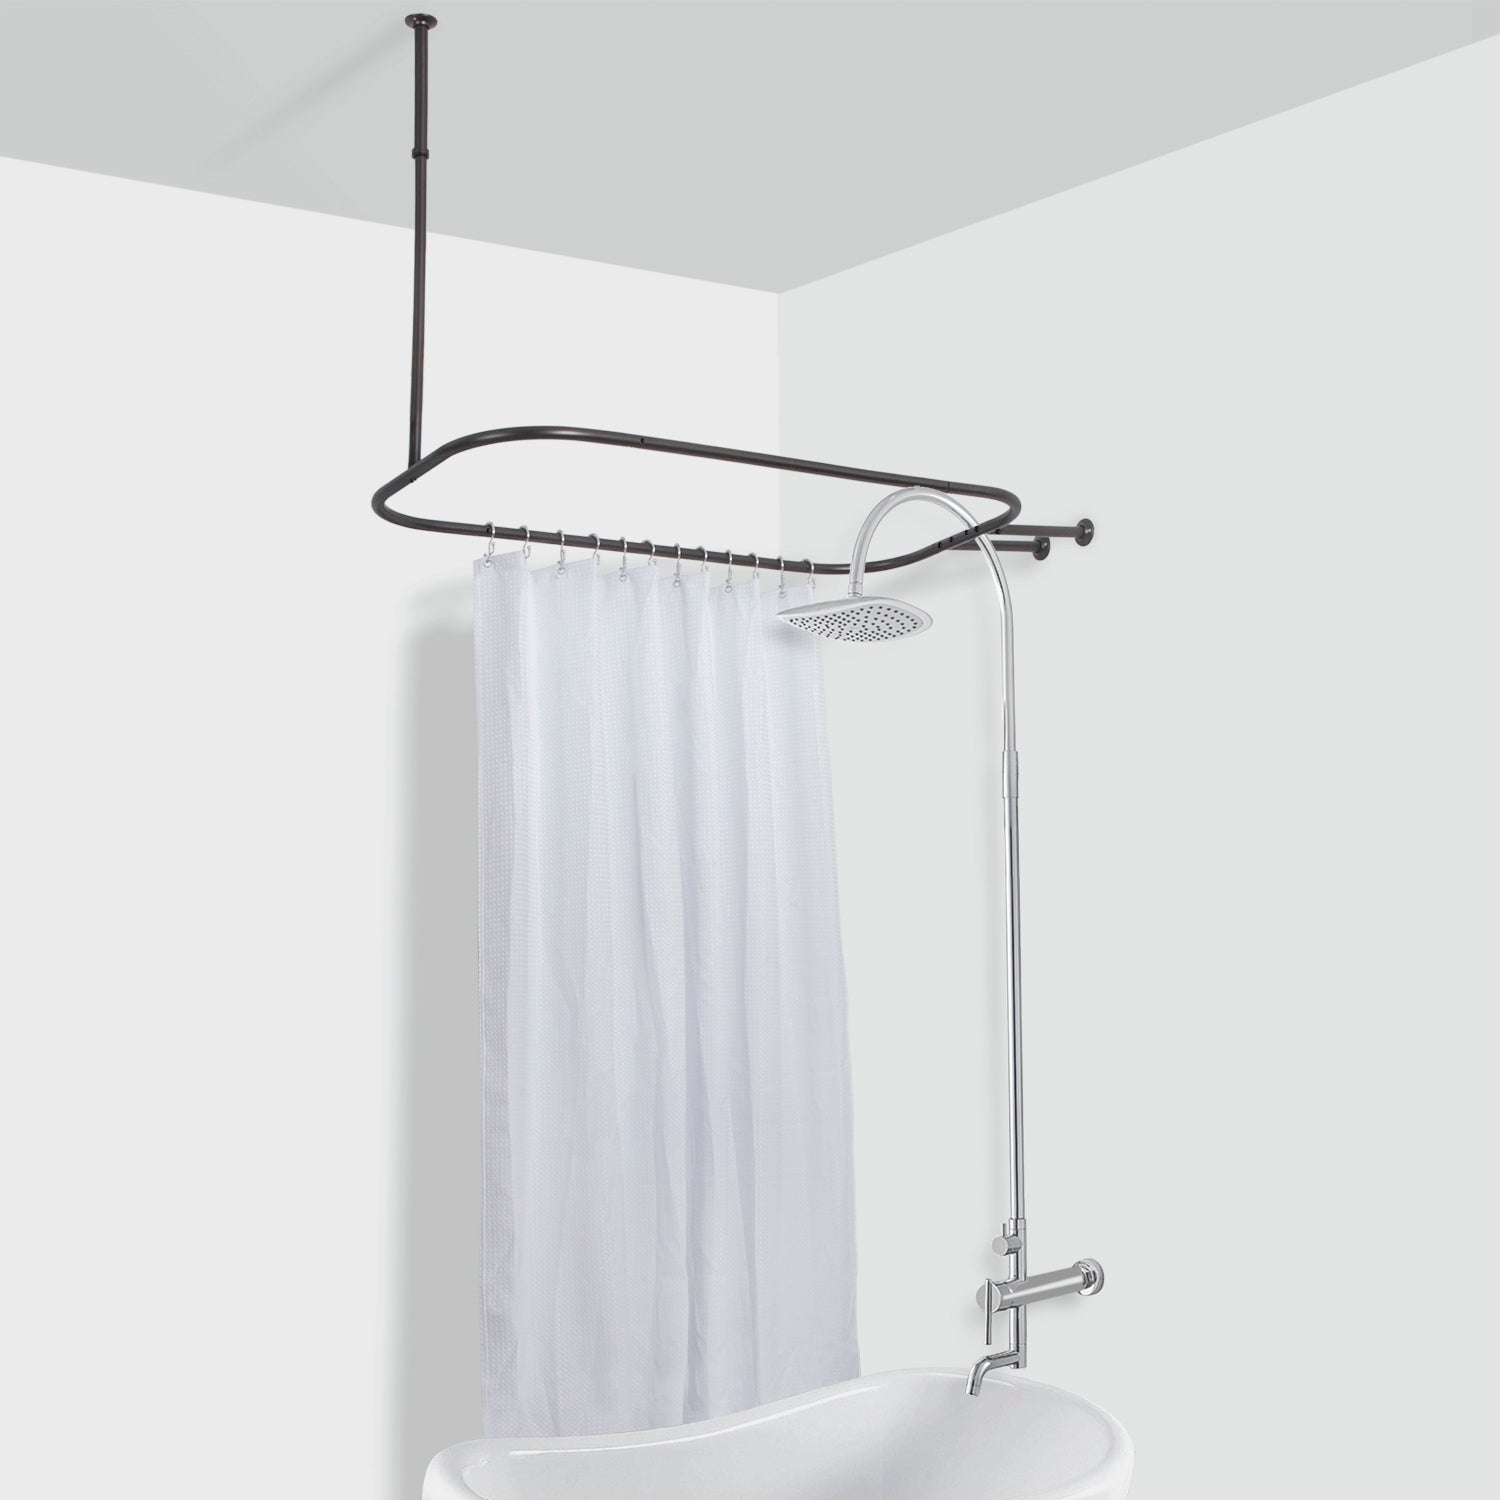 Picture of: Shop Rustproof Hoop Shower Rod For Clawfoot Tub On Sale Overstock 20012486